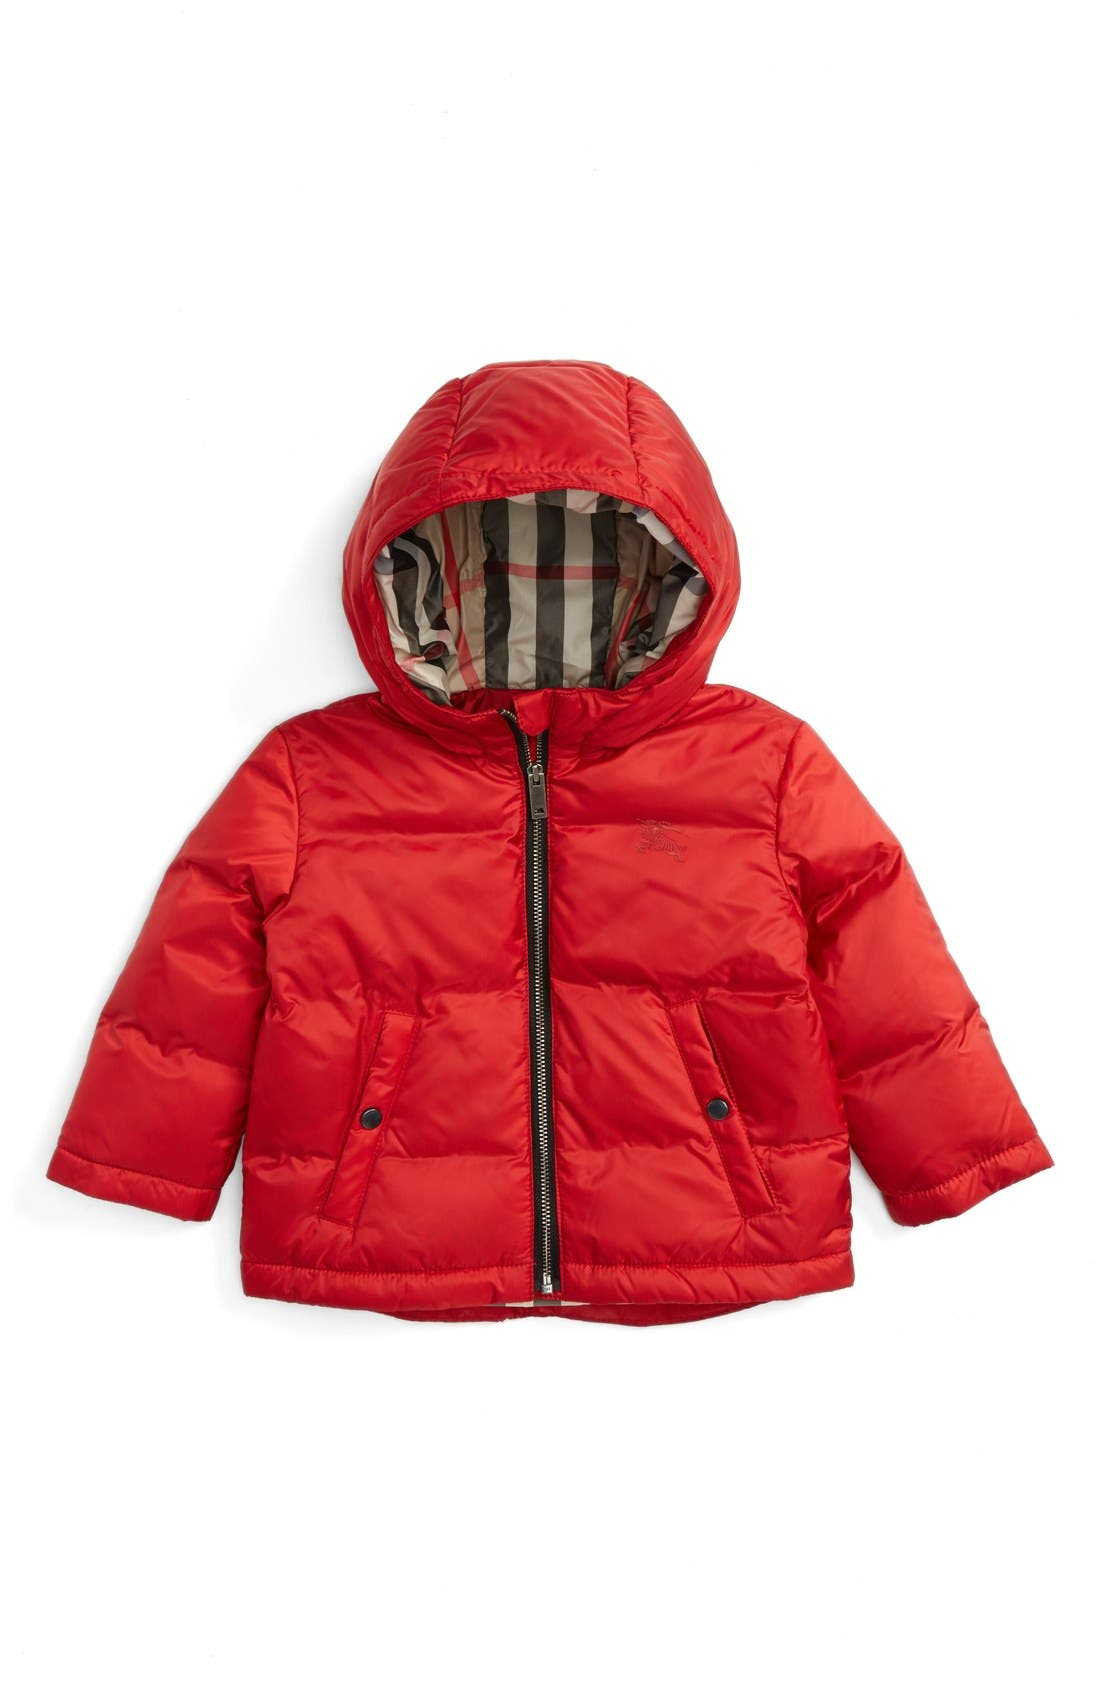 Alternate Image 1 Selected - Burberry Rio Hooded Puffer Jacket (Baby Girls)